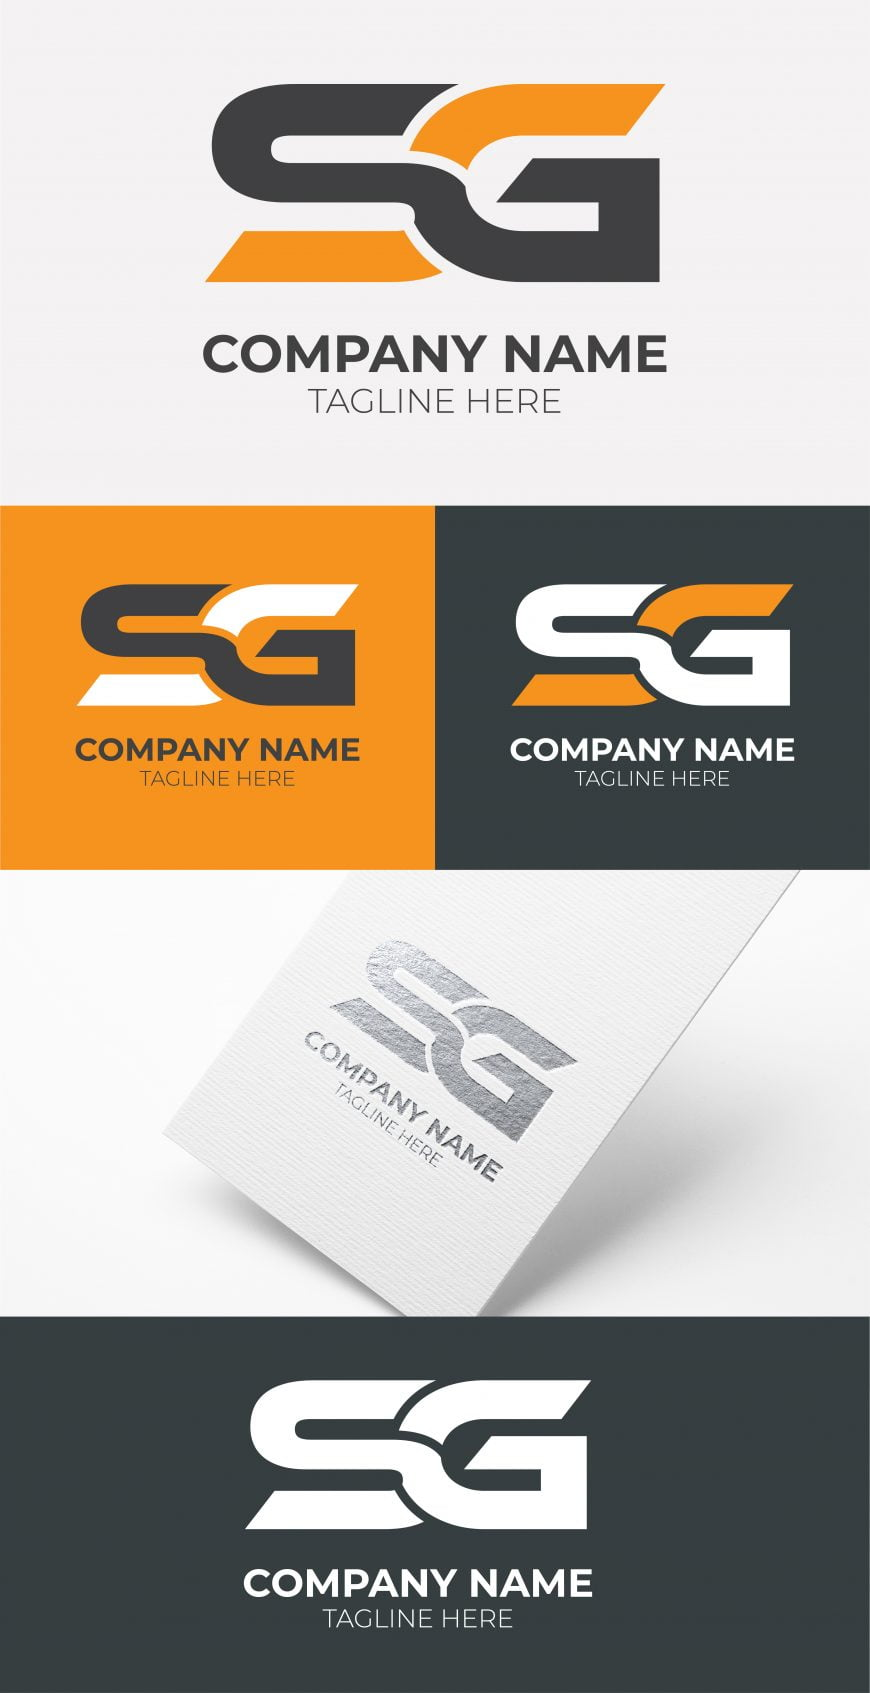 SG-LOGO-DESIGN-FREE-TEMPLATE-scaled